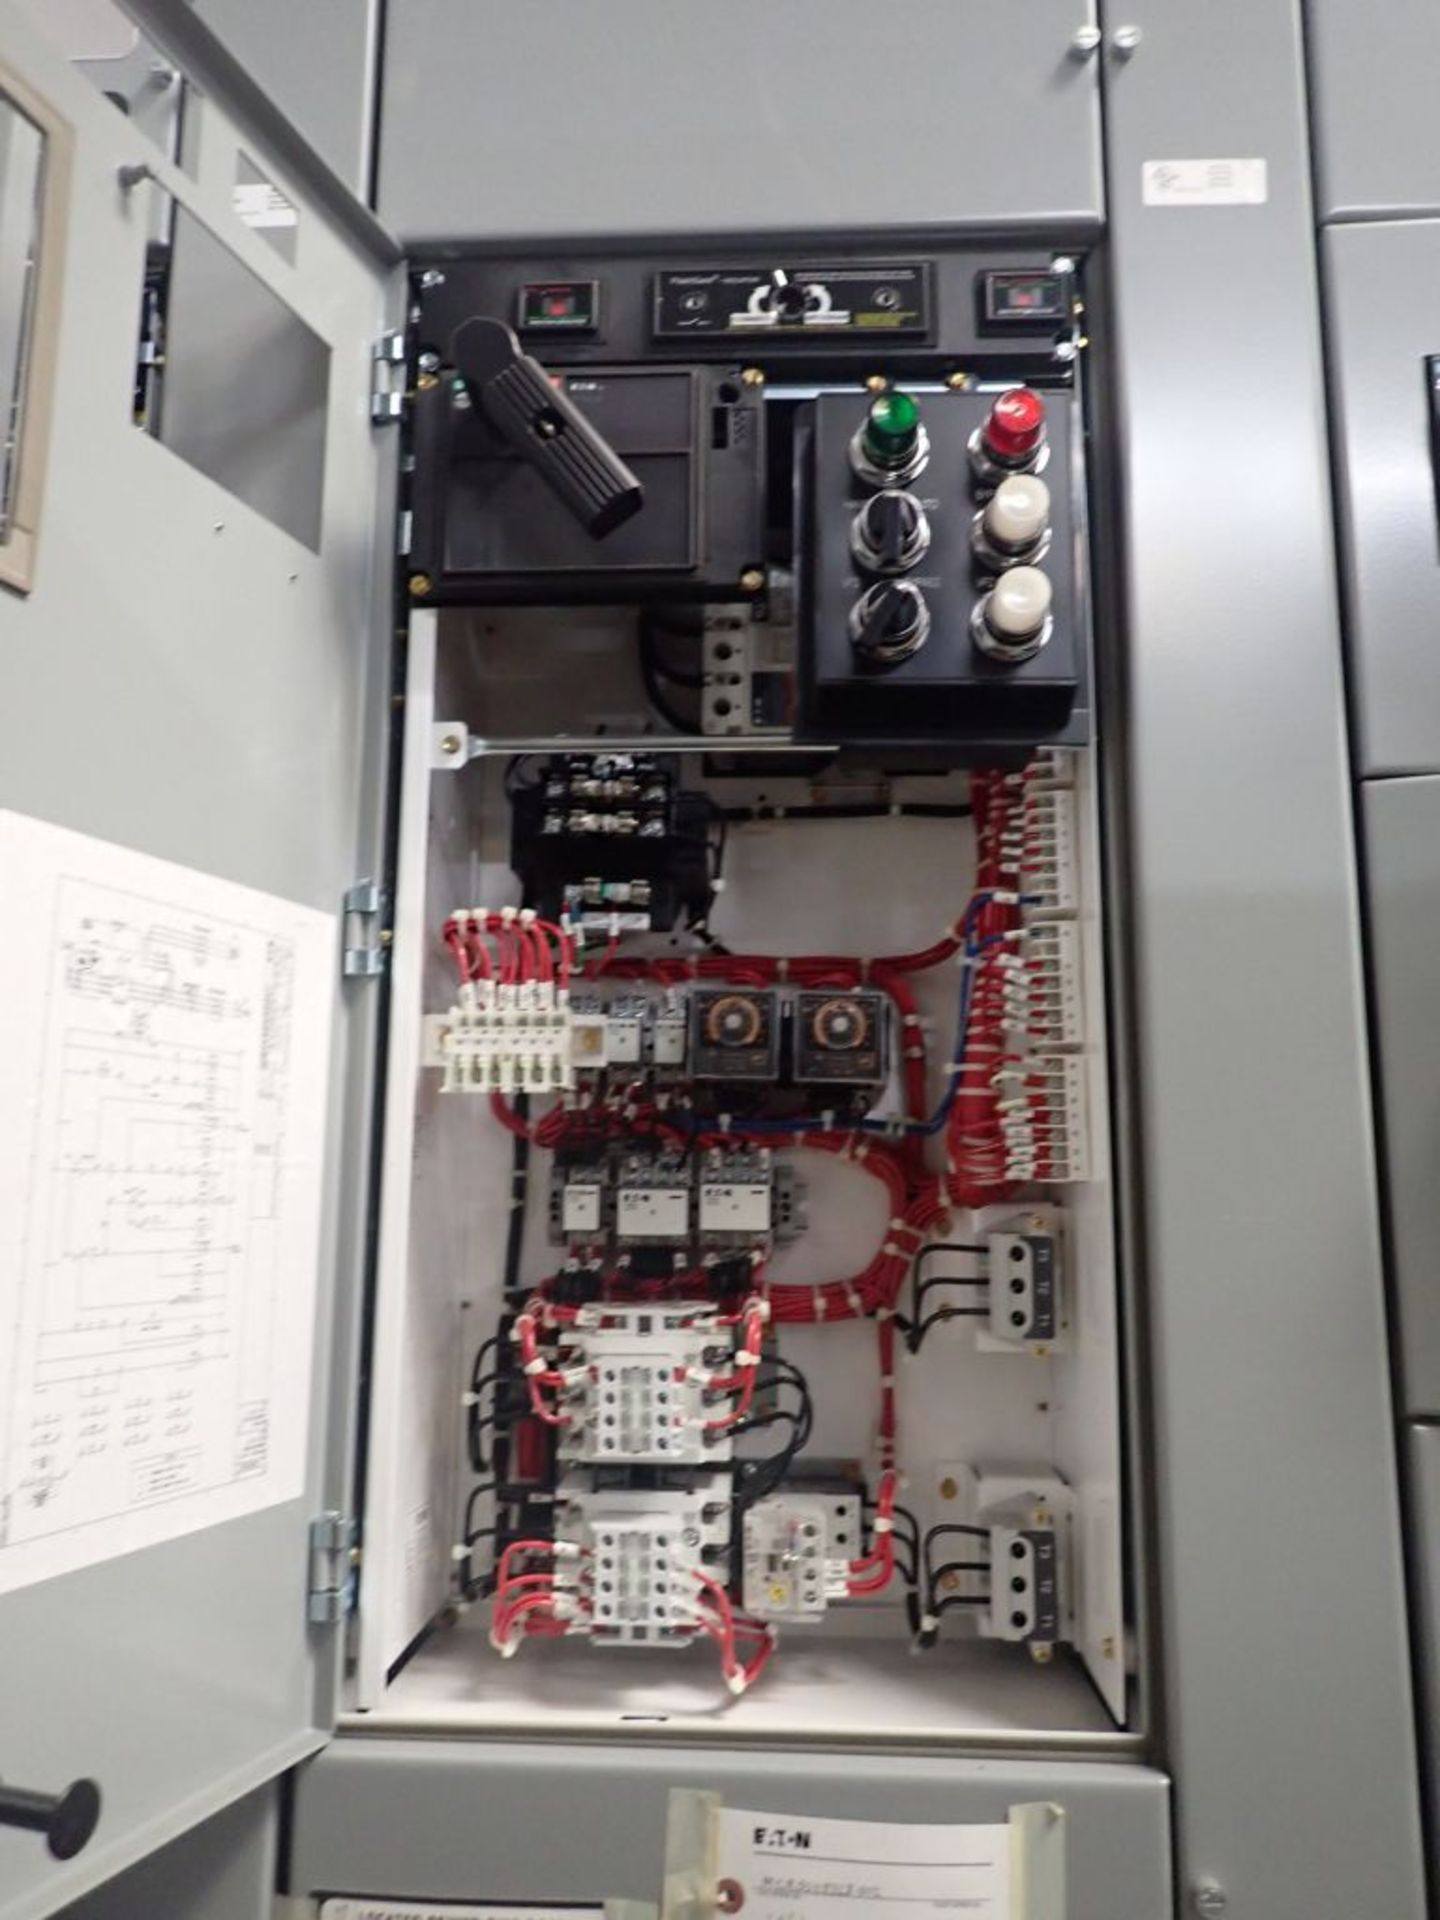 Eaton Freedom Flashgard Motor Control Center   (3) F216-15A-10HP; (1) FDRB-125A, with 150A - Image 25 of 57